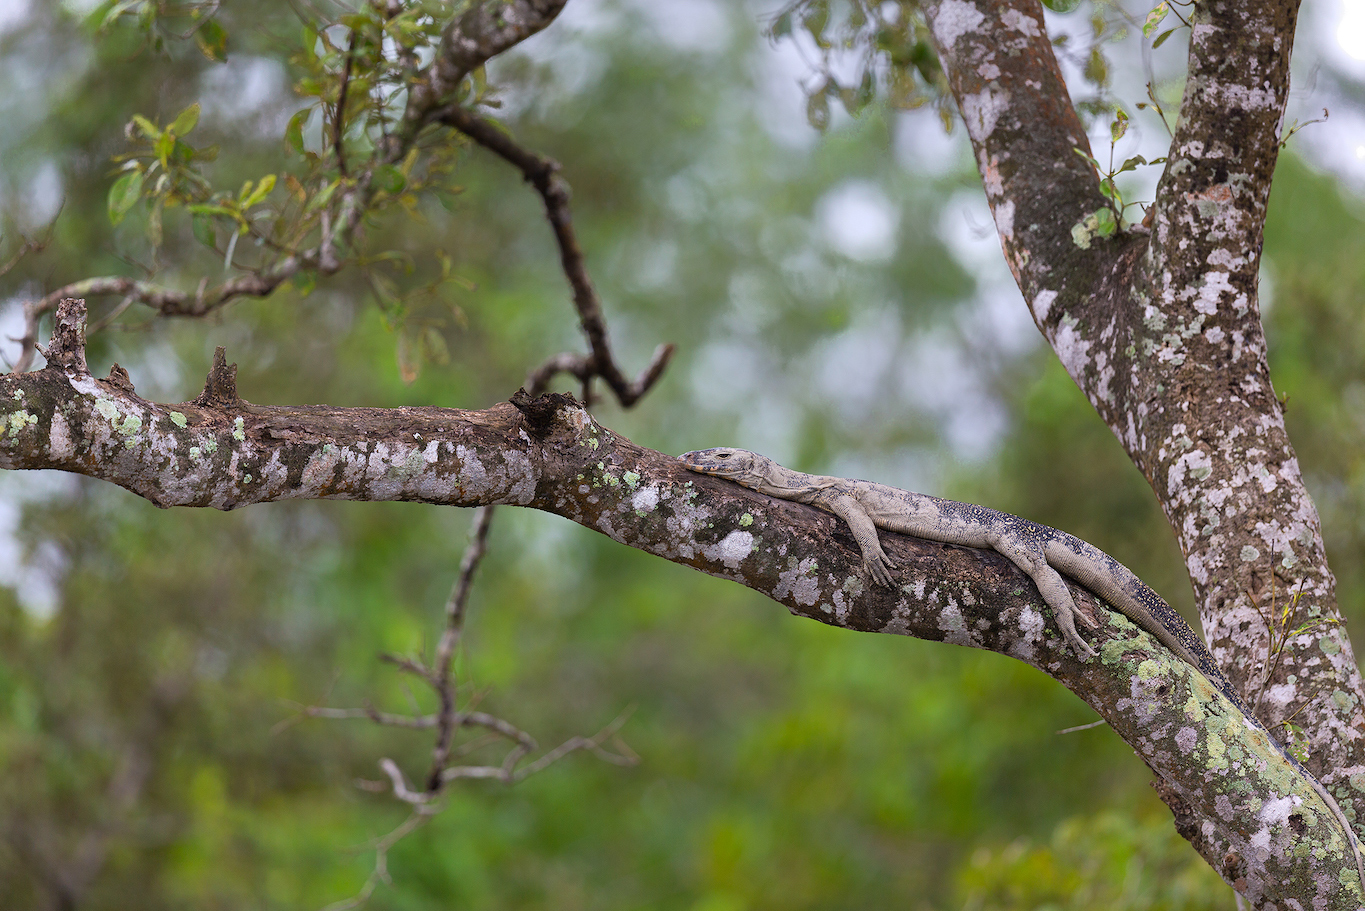 The mangrove forest supports an incredible biodiversity, which includes common species like the Bengal monitor lizard which is seen across a variety of habitats. Photo: Arindam Bhattacharya.